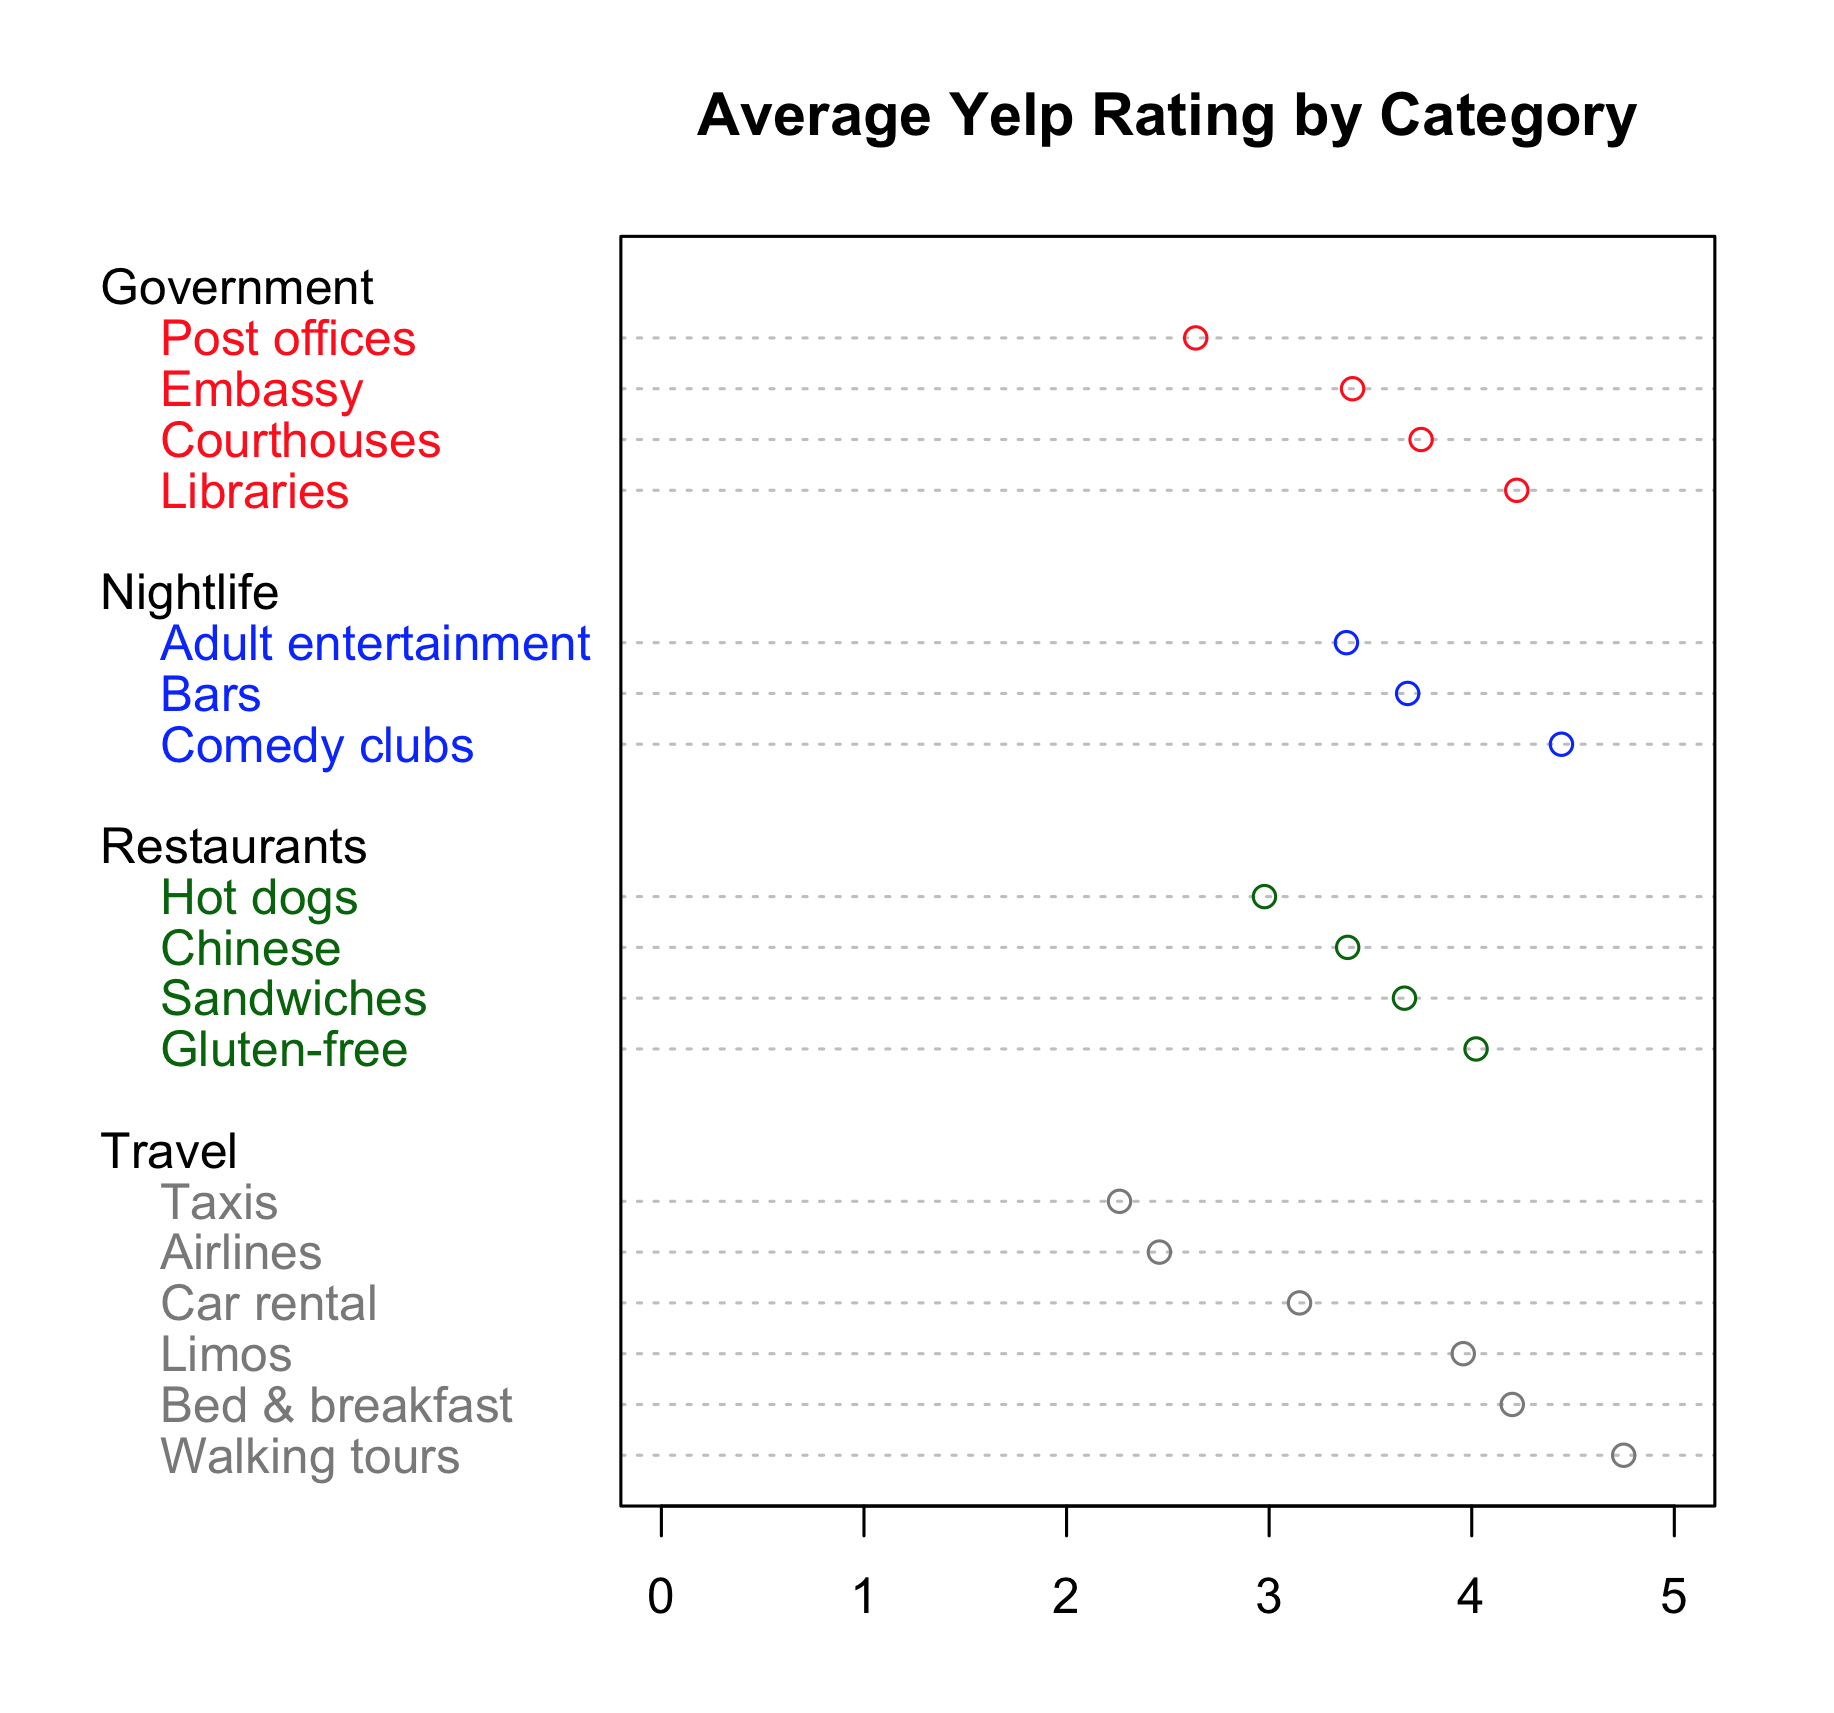 Average Yelp Rating of Various Business Categories